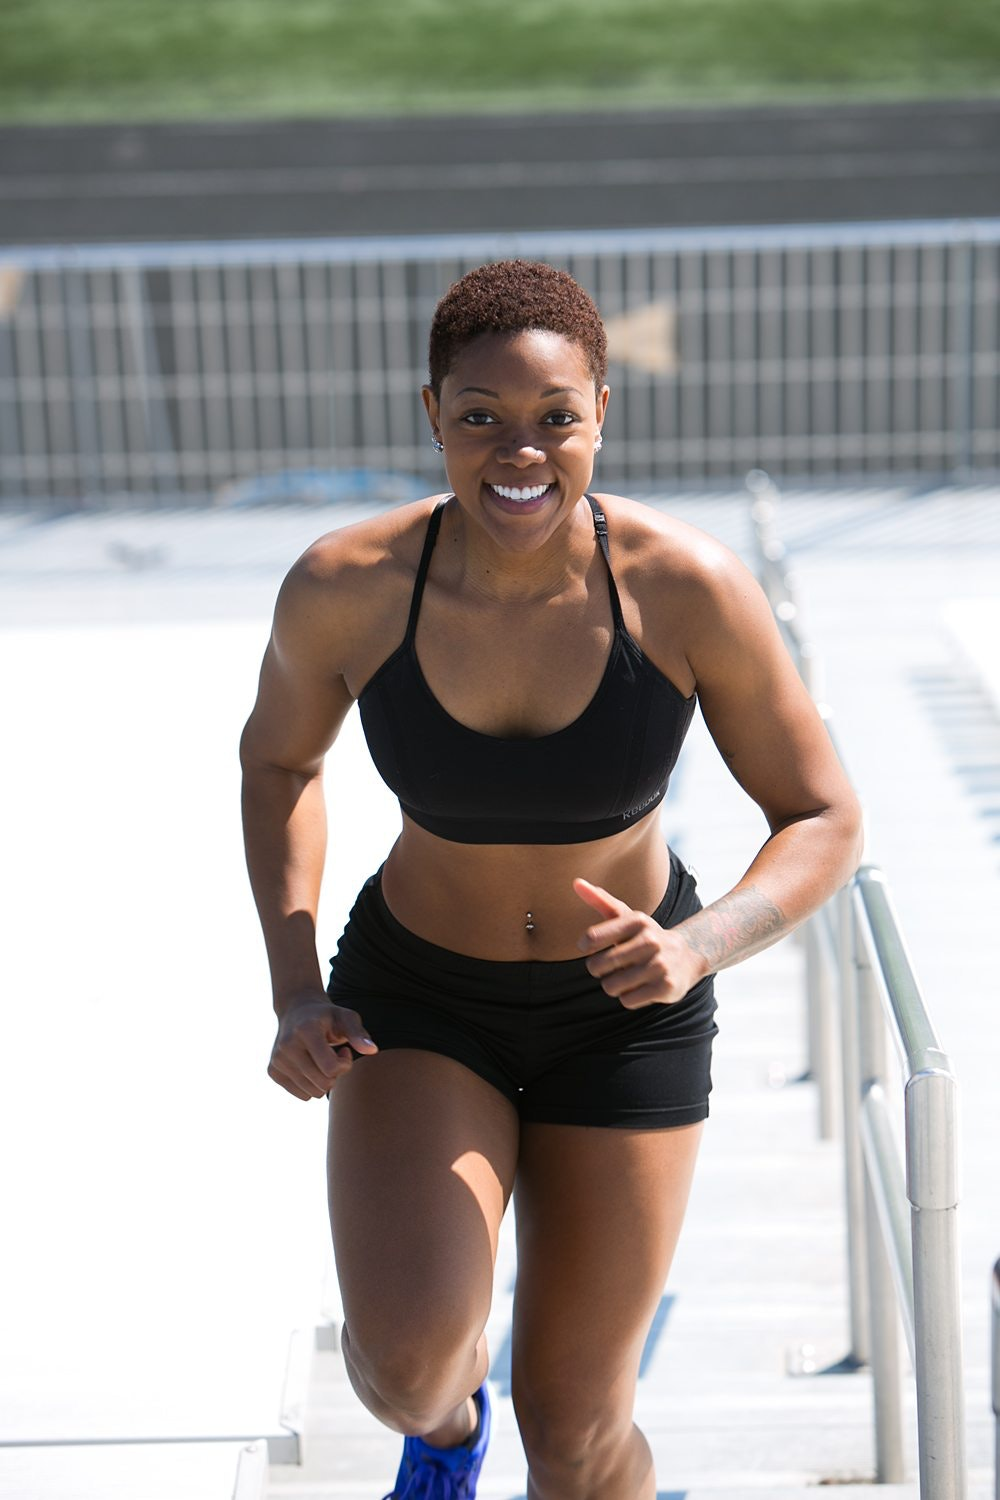 Woman Wearing Black Sports Bra And Jogger Shorts Smiling Free Sport Butterfly Download